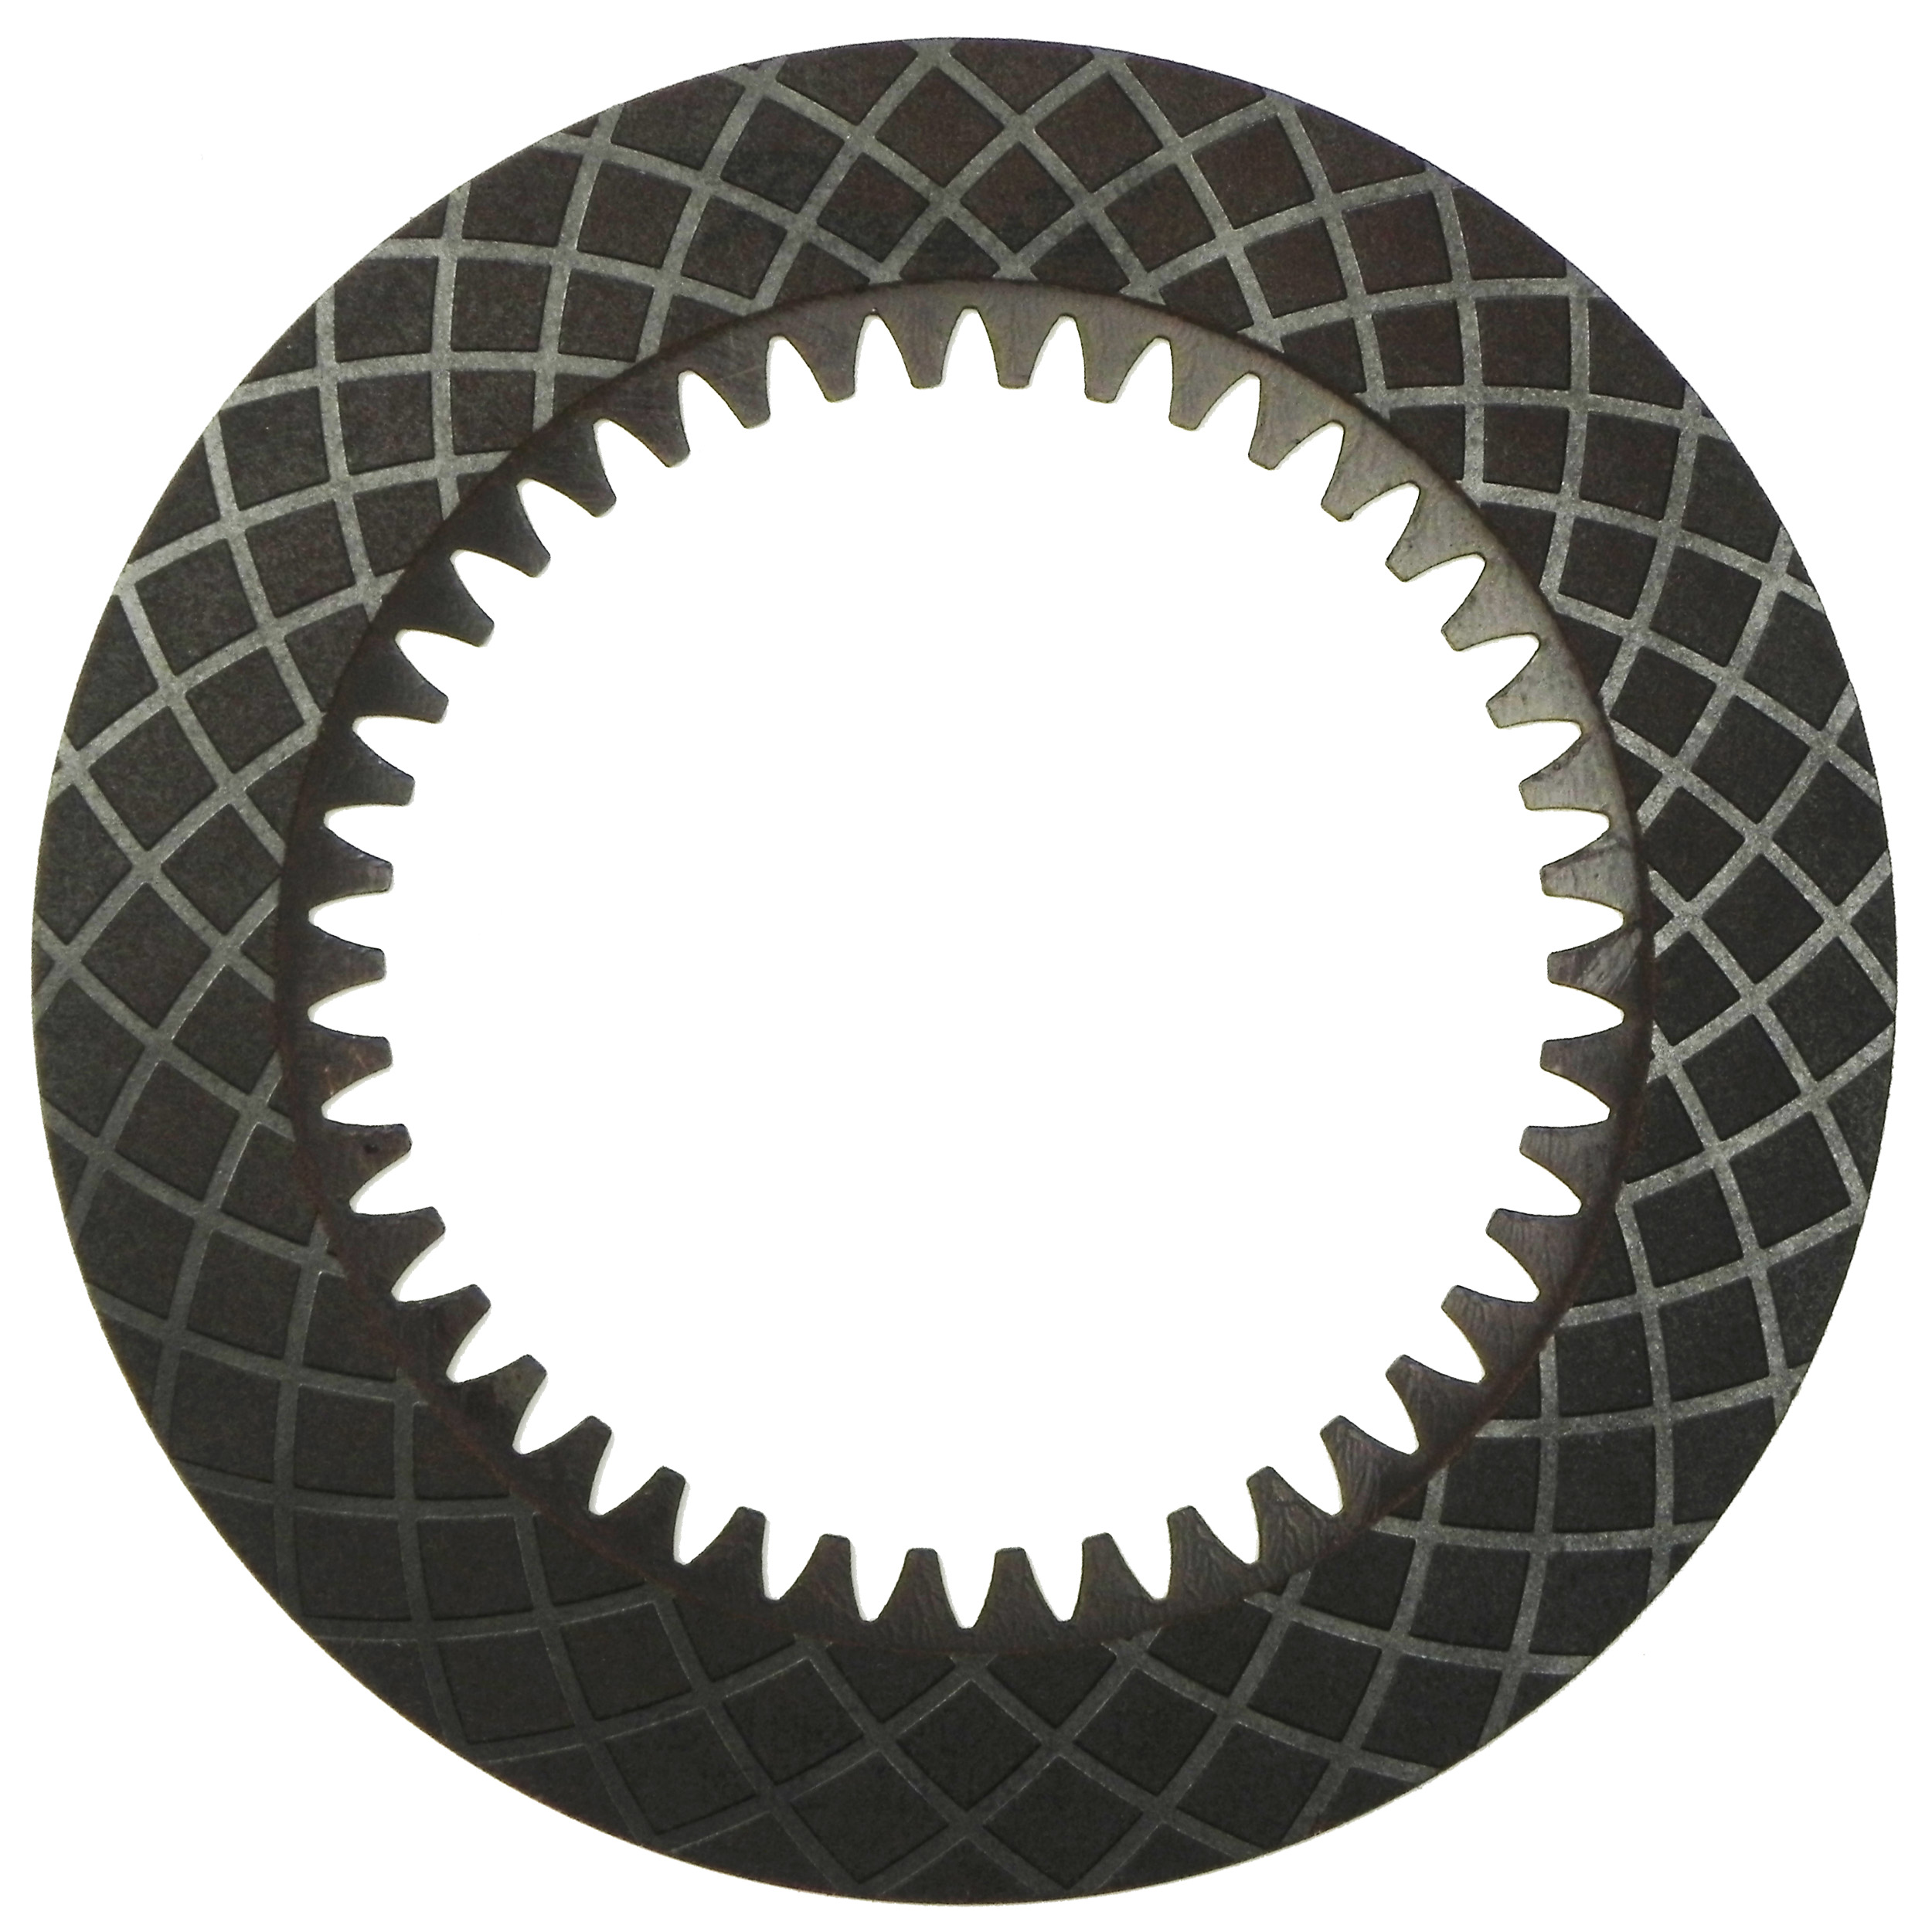 R571885 | 2008-ON Friction Clutch Plate GPX 3rd GPX